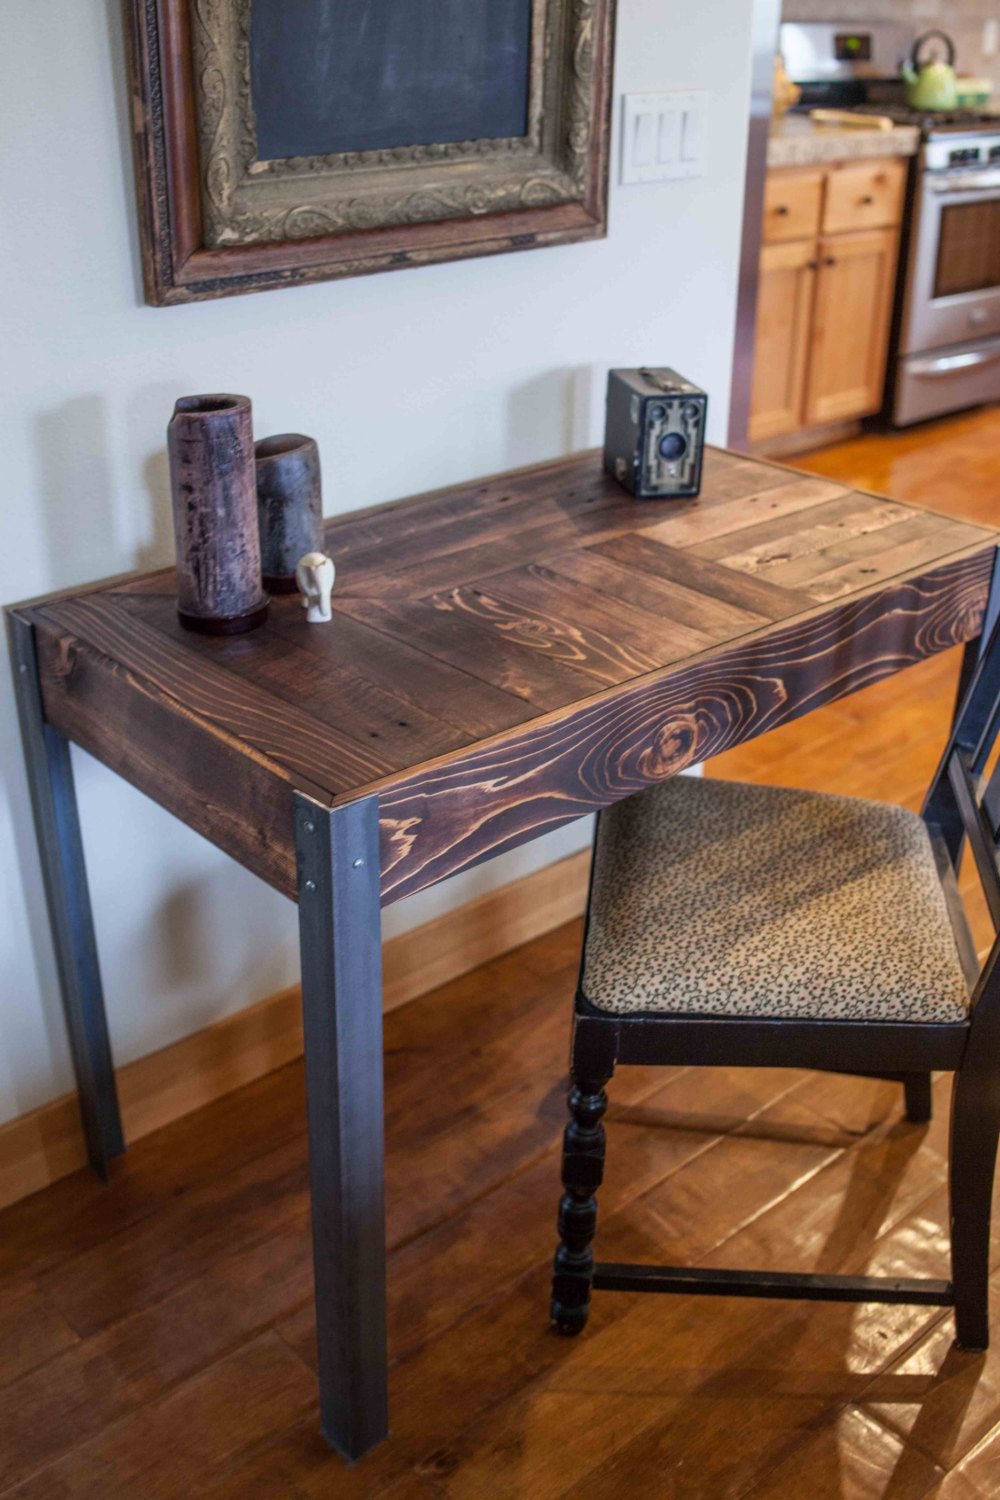 Repurposed Pallet Wood Desk with Metal Legs Etsy in 2020